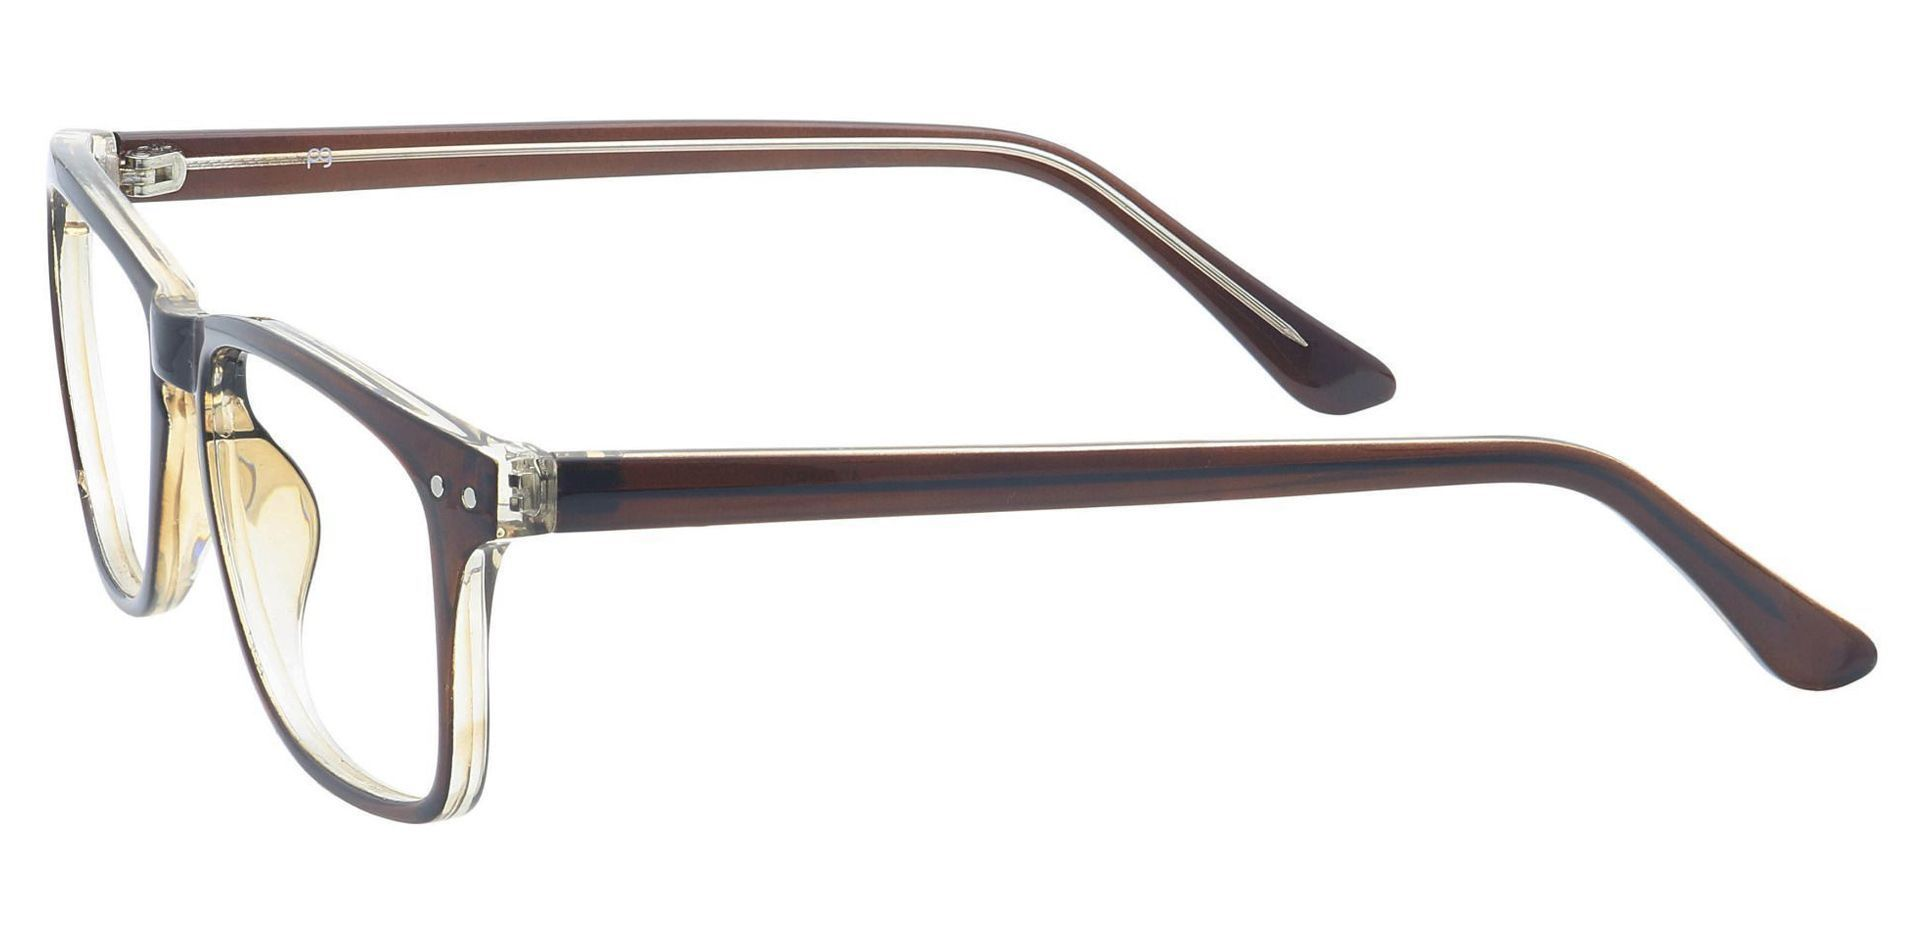 Hope Oval Blue Light Blocking Glasses - Brown